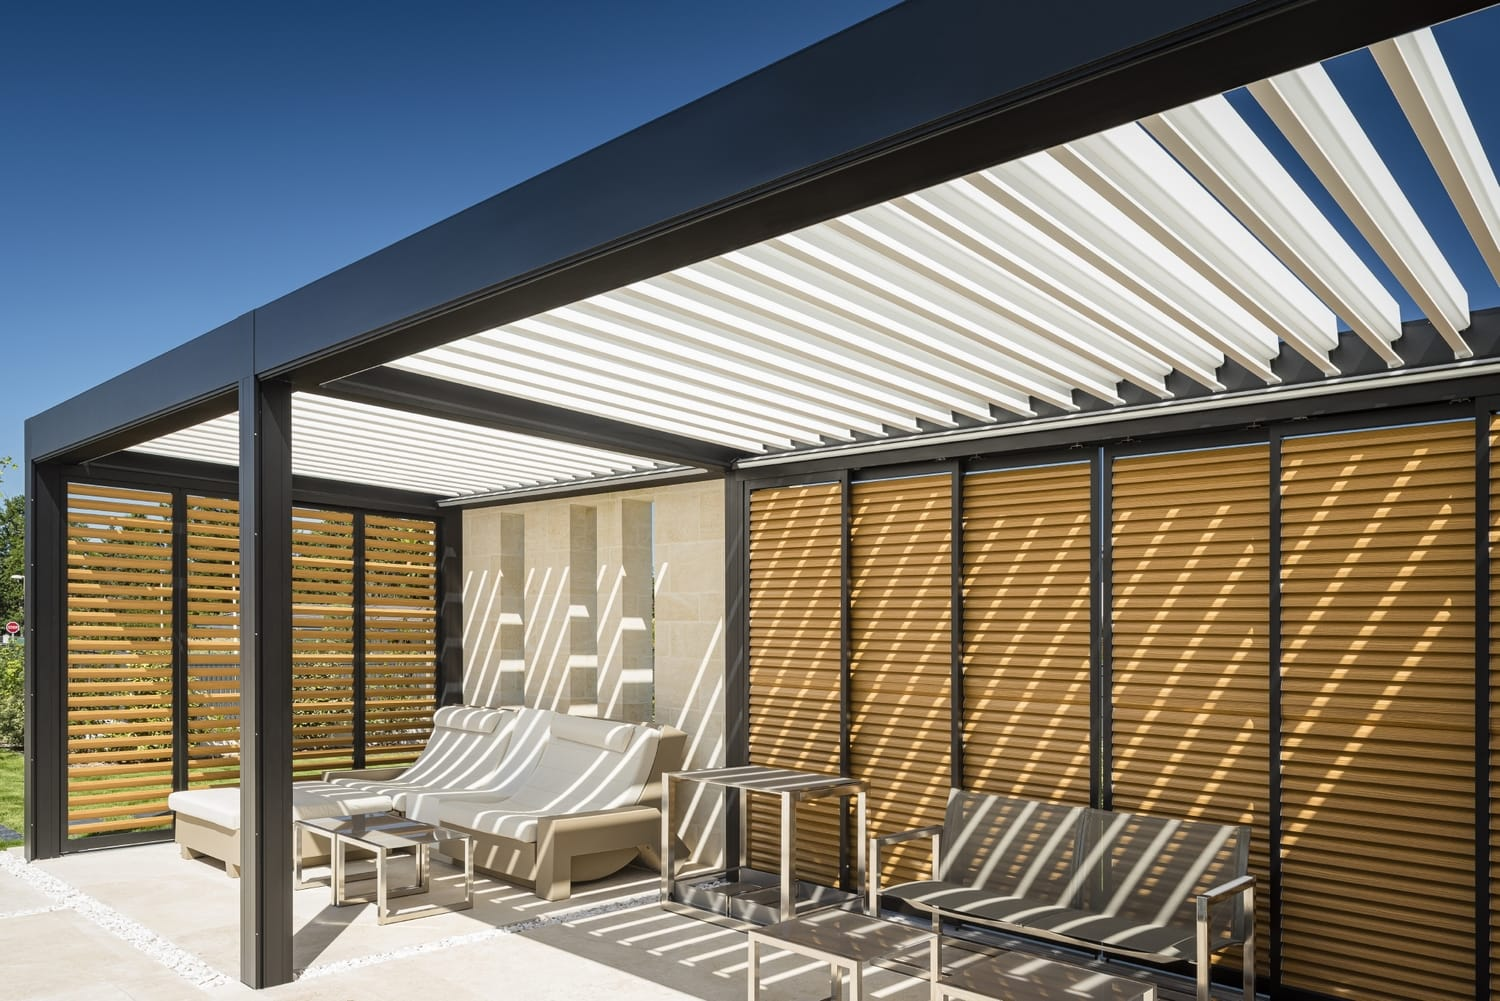 Aluminum pergola with wooden sliding panels